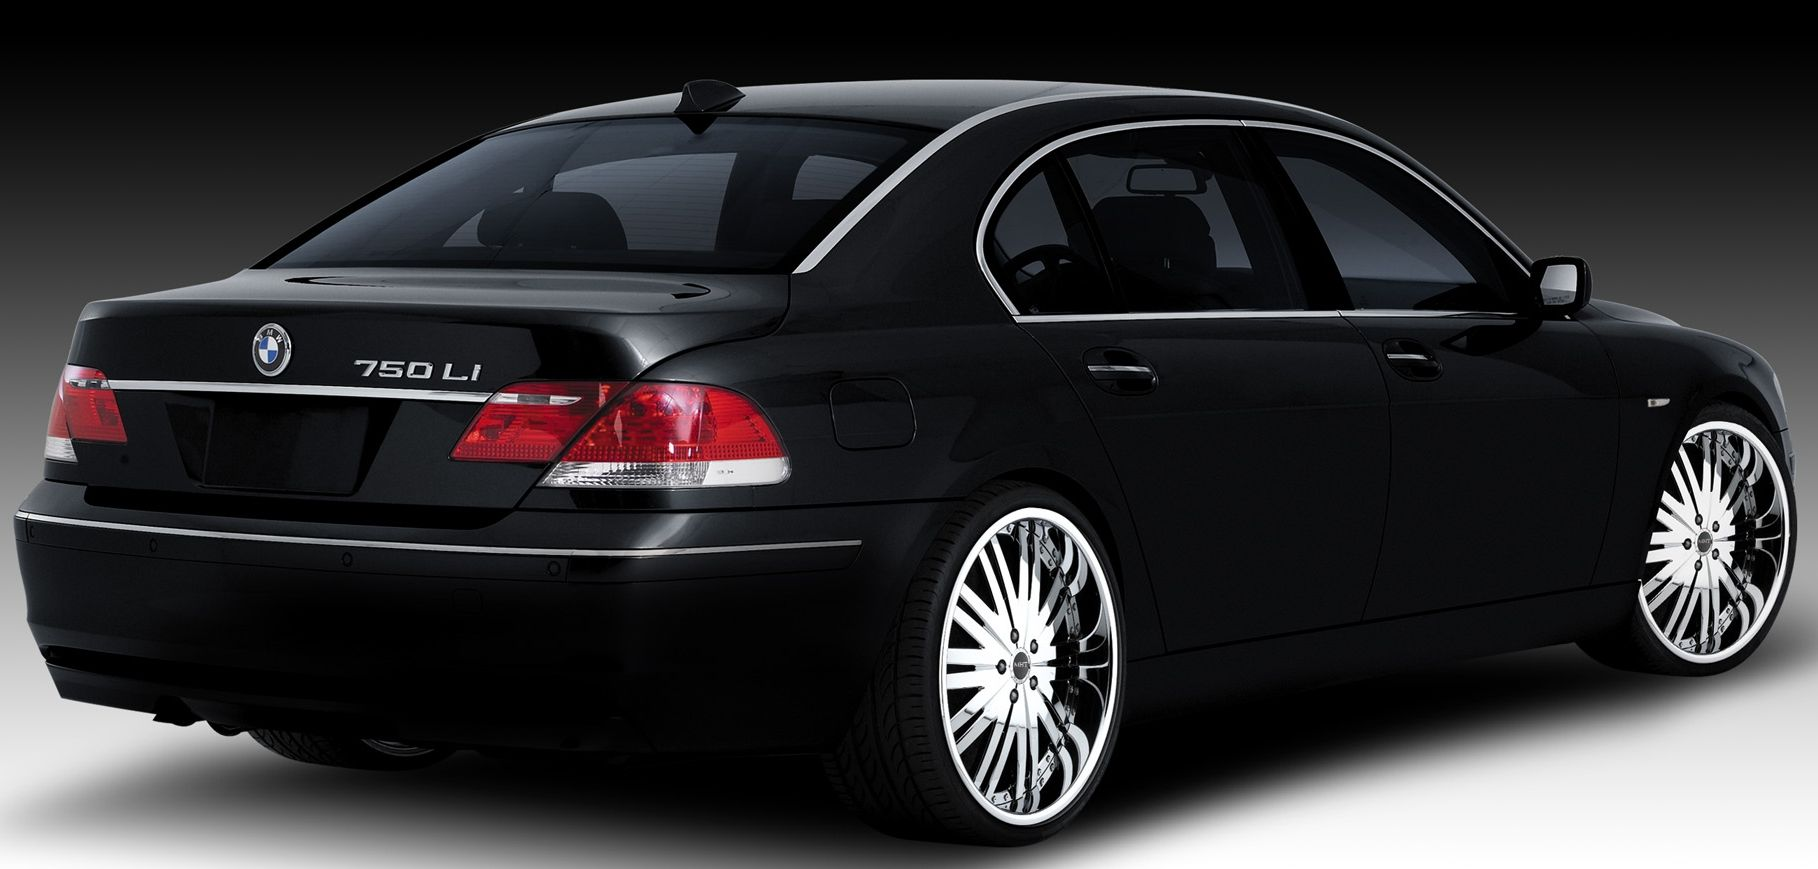 Bmw 750i (5 models) Views - 37999 Rating 31